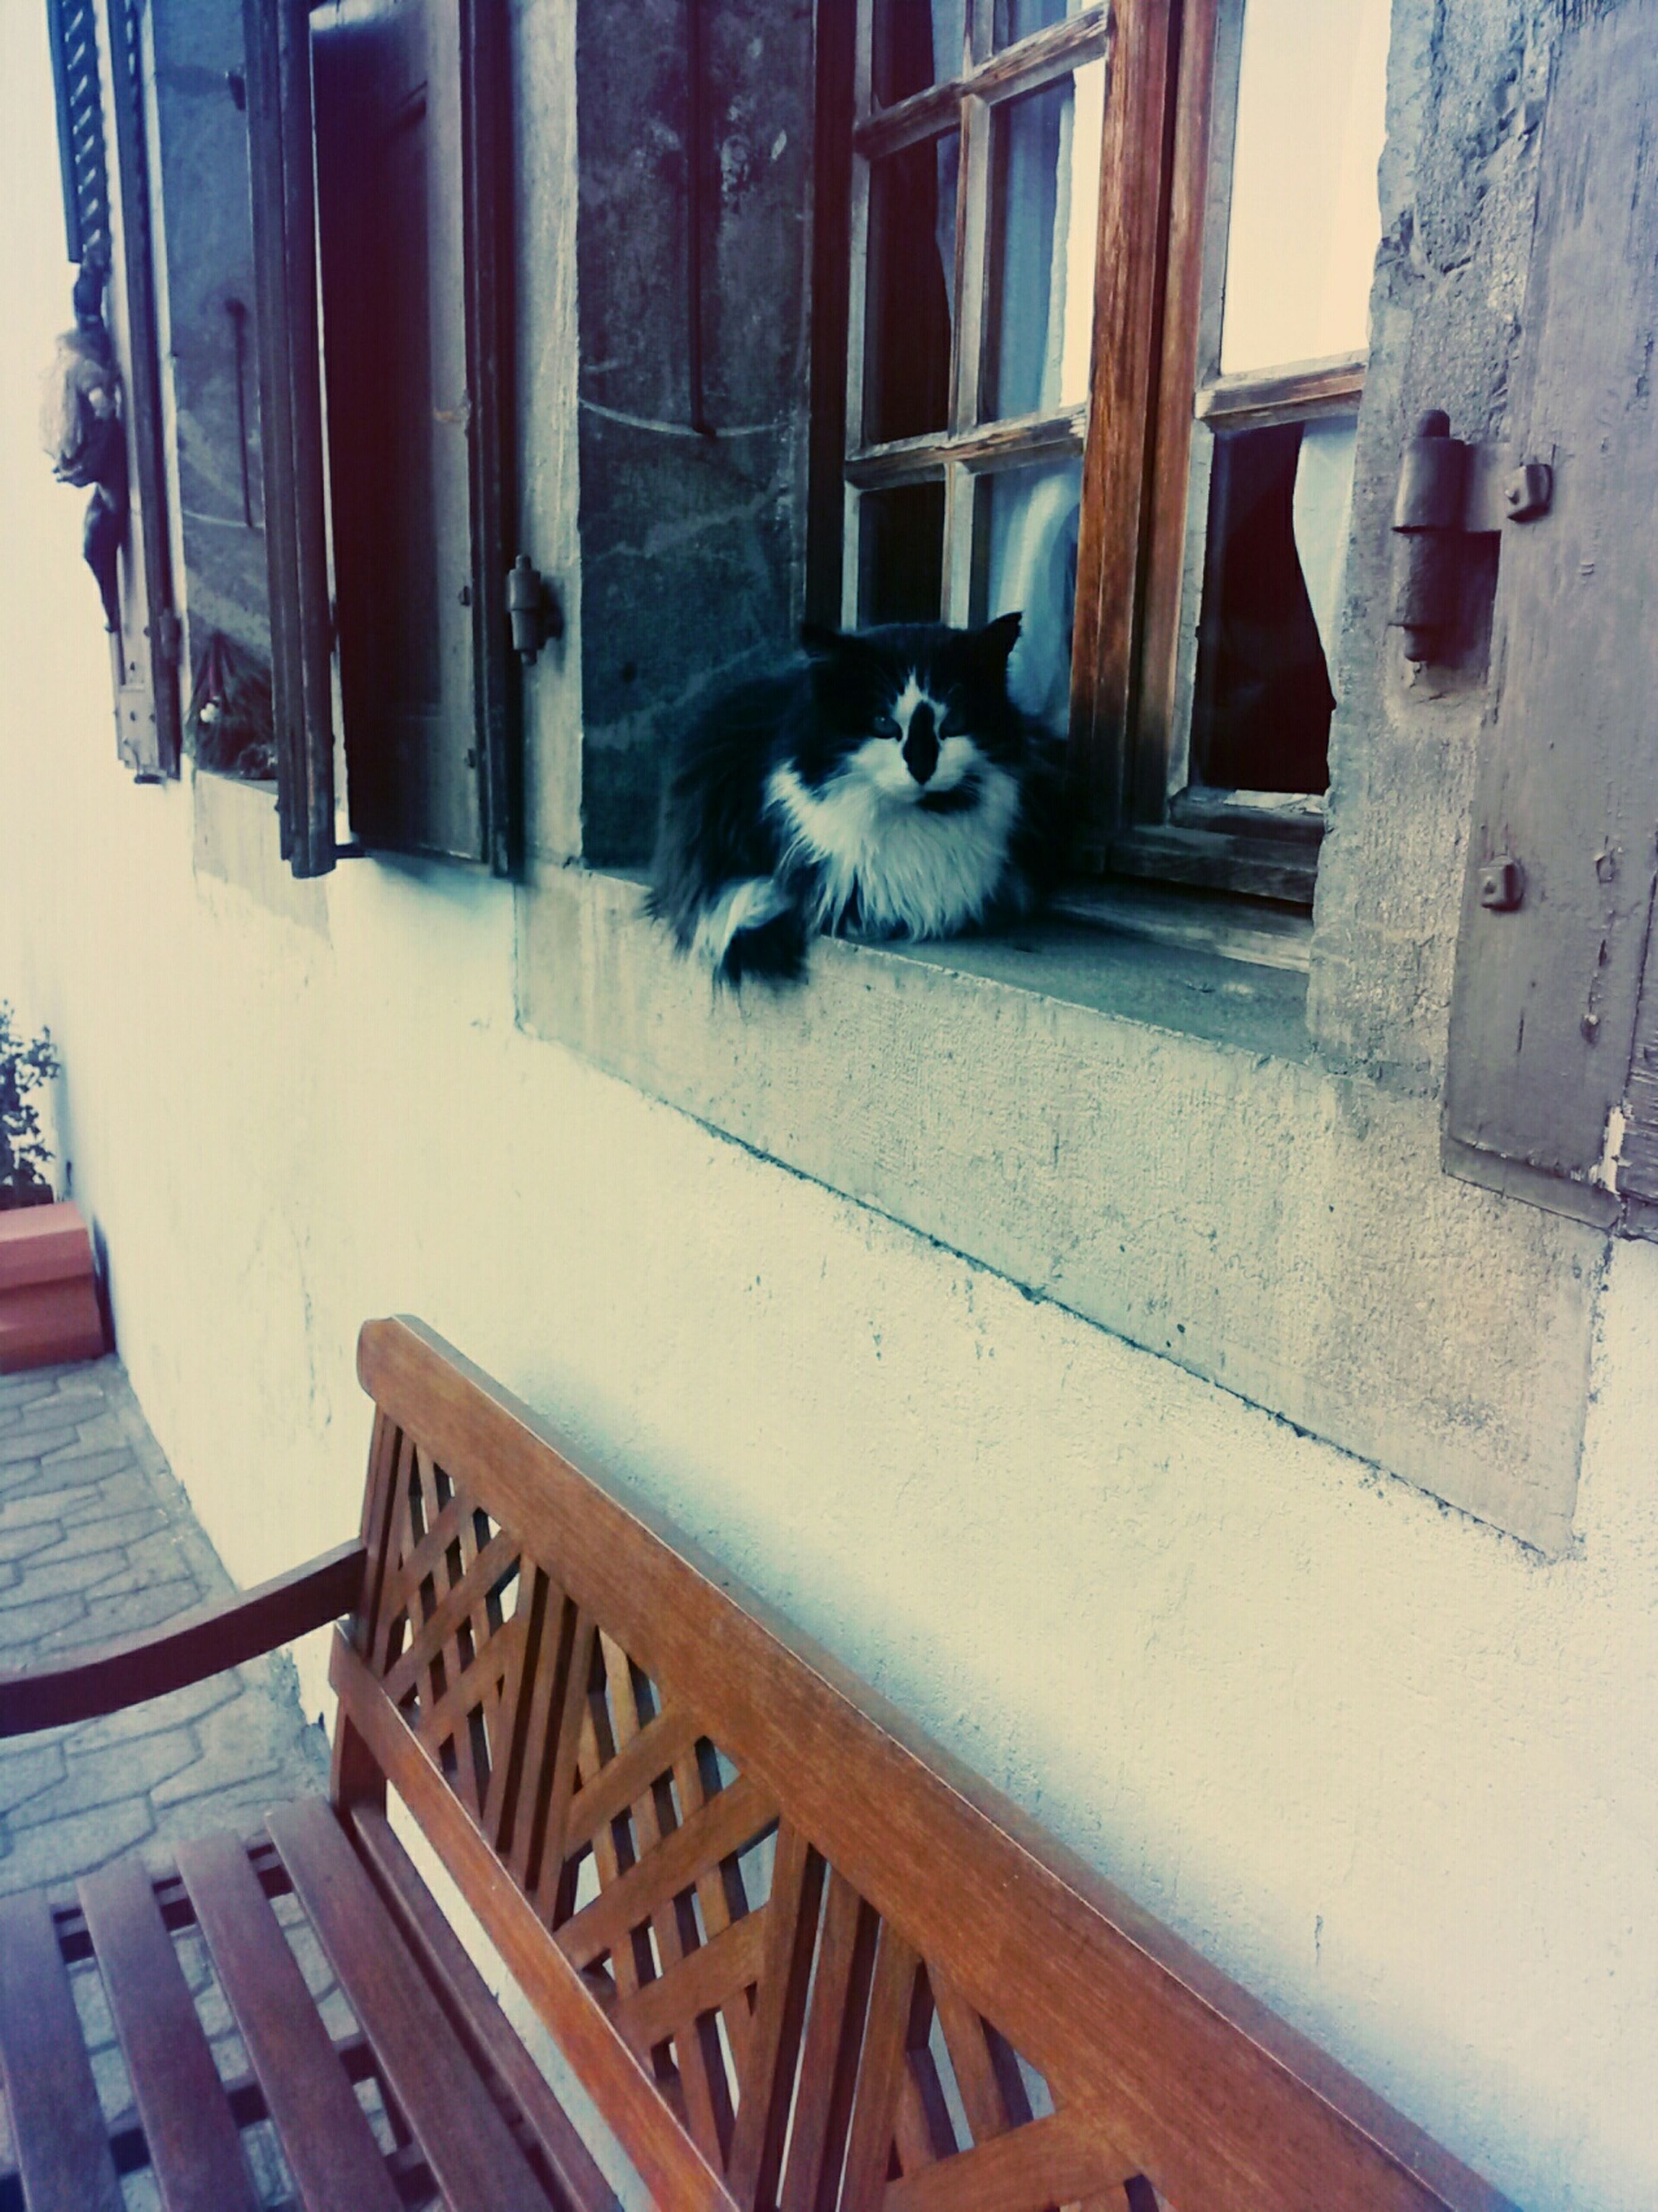 animal themes, domestic cat, one animal, domestic animals, pets, cat, mammal, feline, building exterior, built structure, architecture, house, sitting, window, steps, wall - building feature, whisker, relaxation, day, door